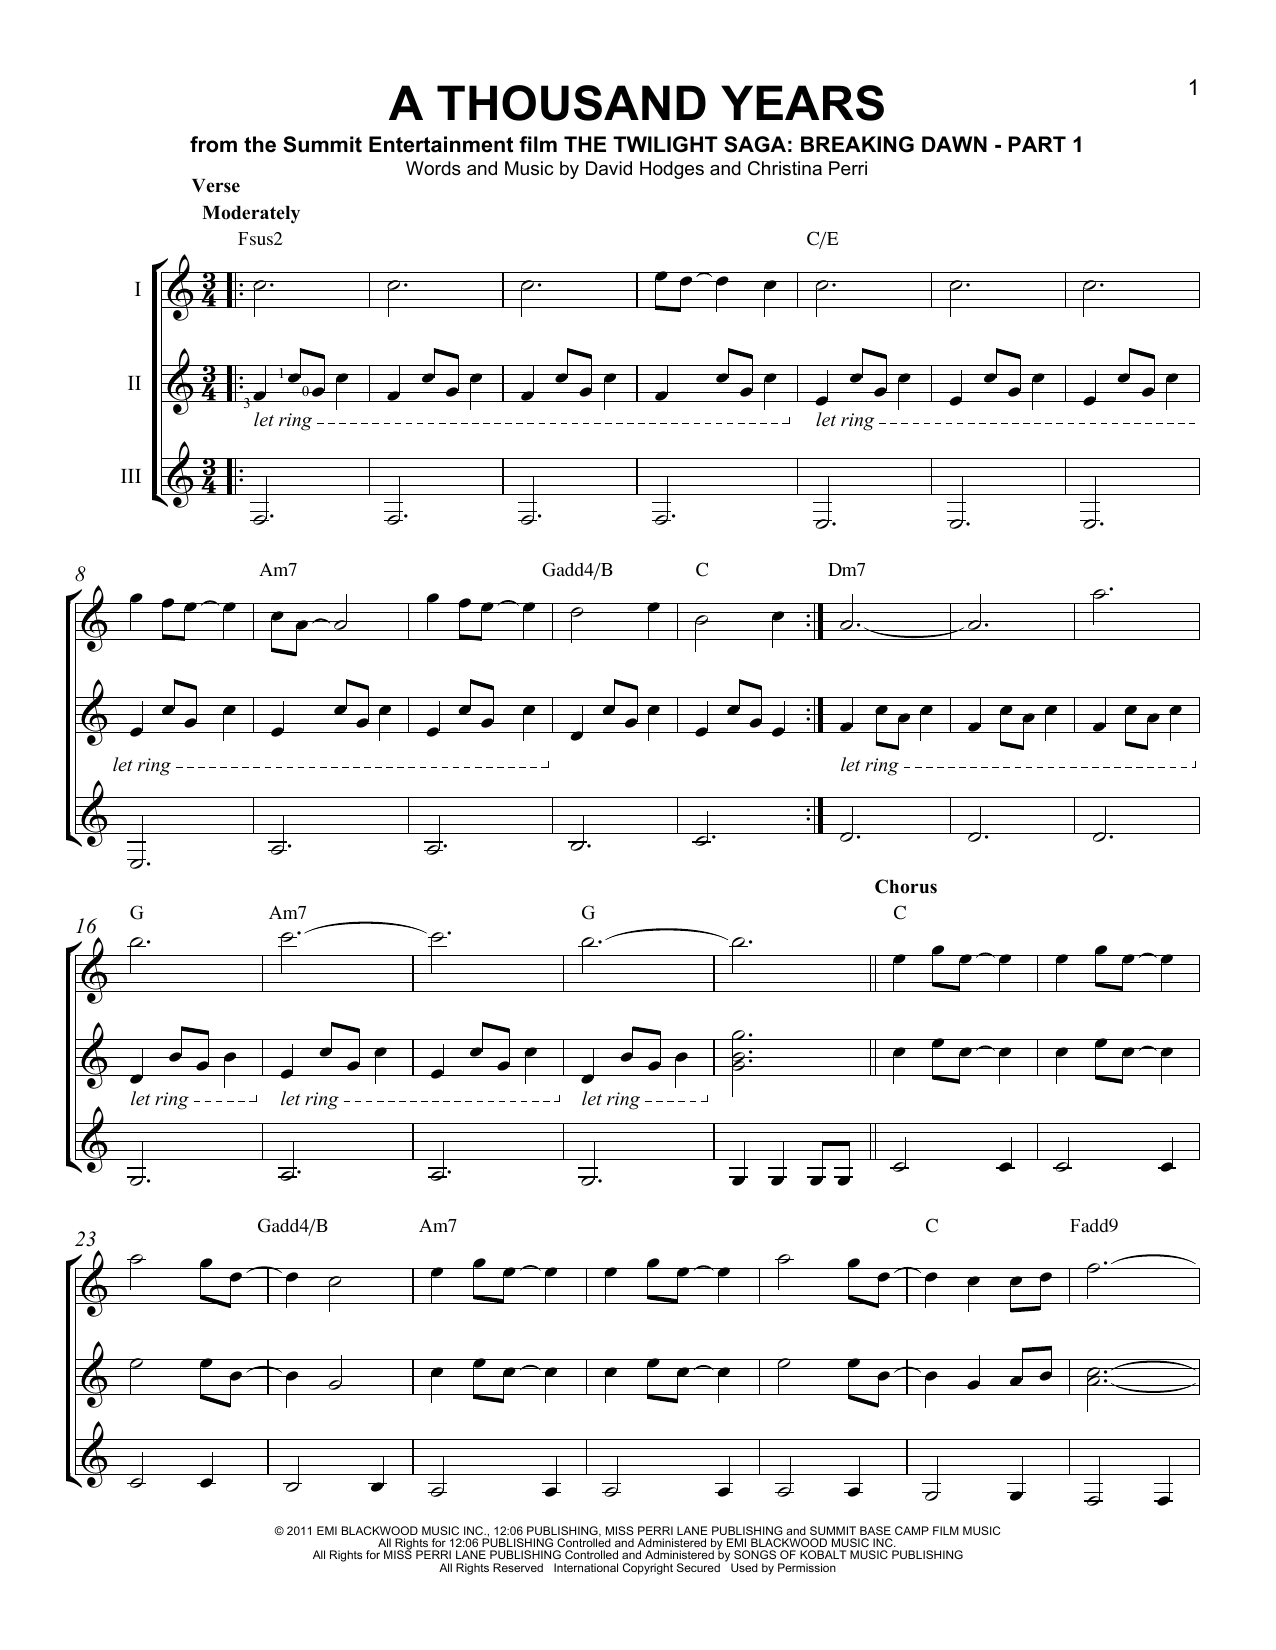 A Thousand Years sheet music by Christina Perri (GTRENS u2013 165629)